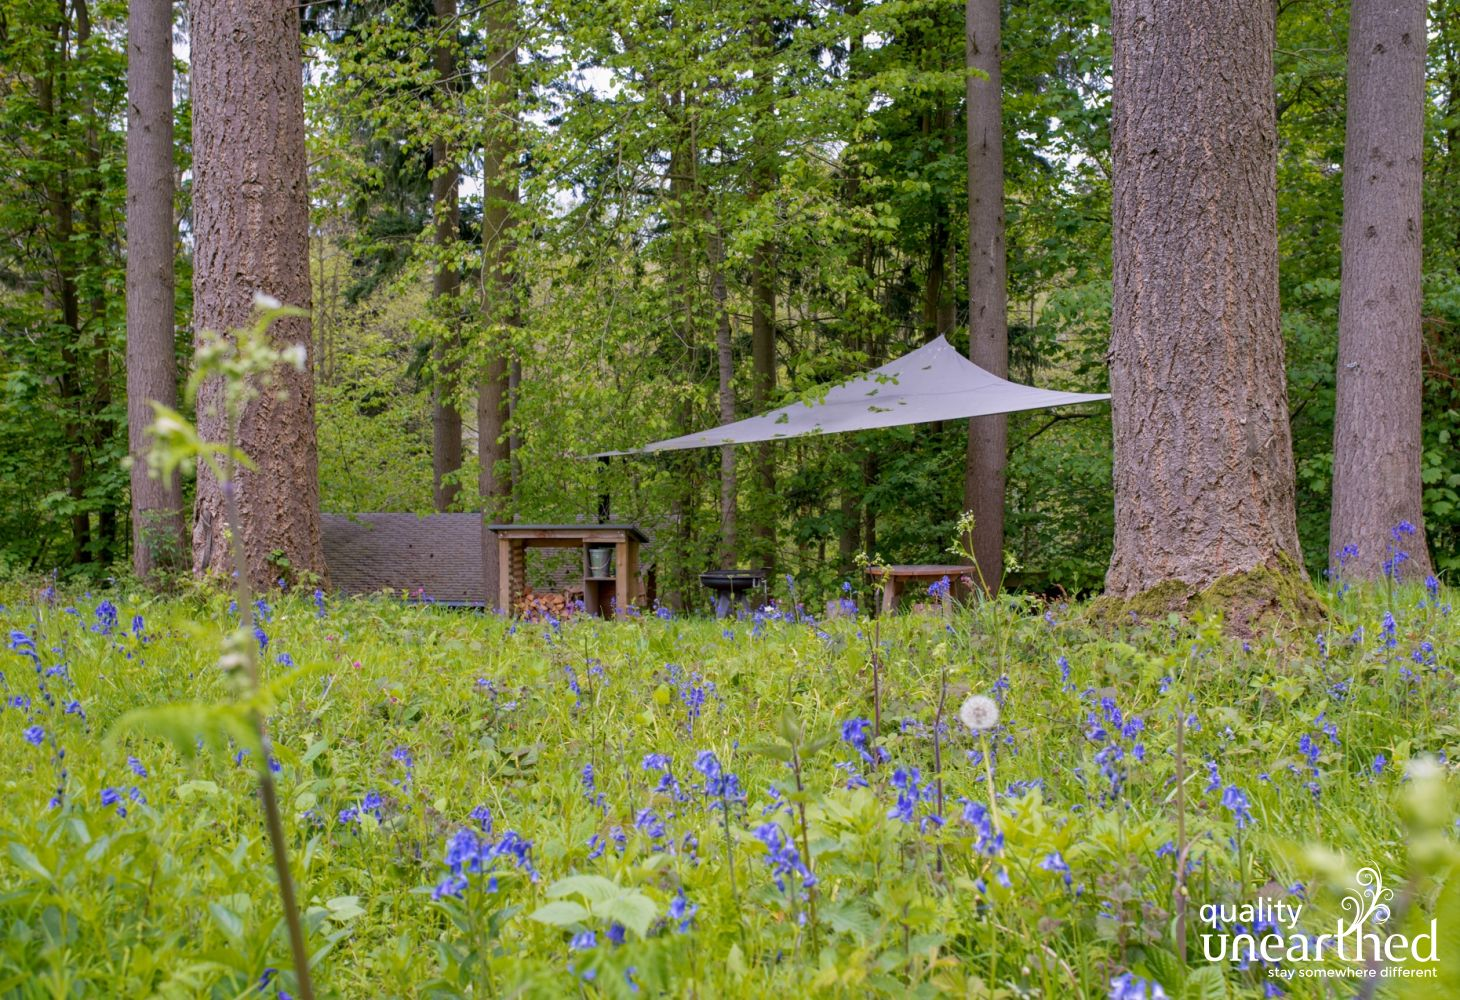 The glade at the back of the treehouse with a BBQ firepit and table